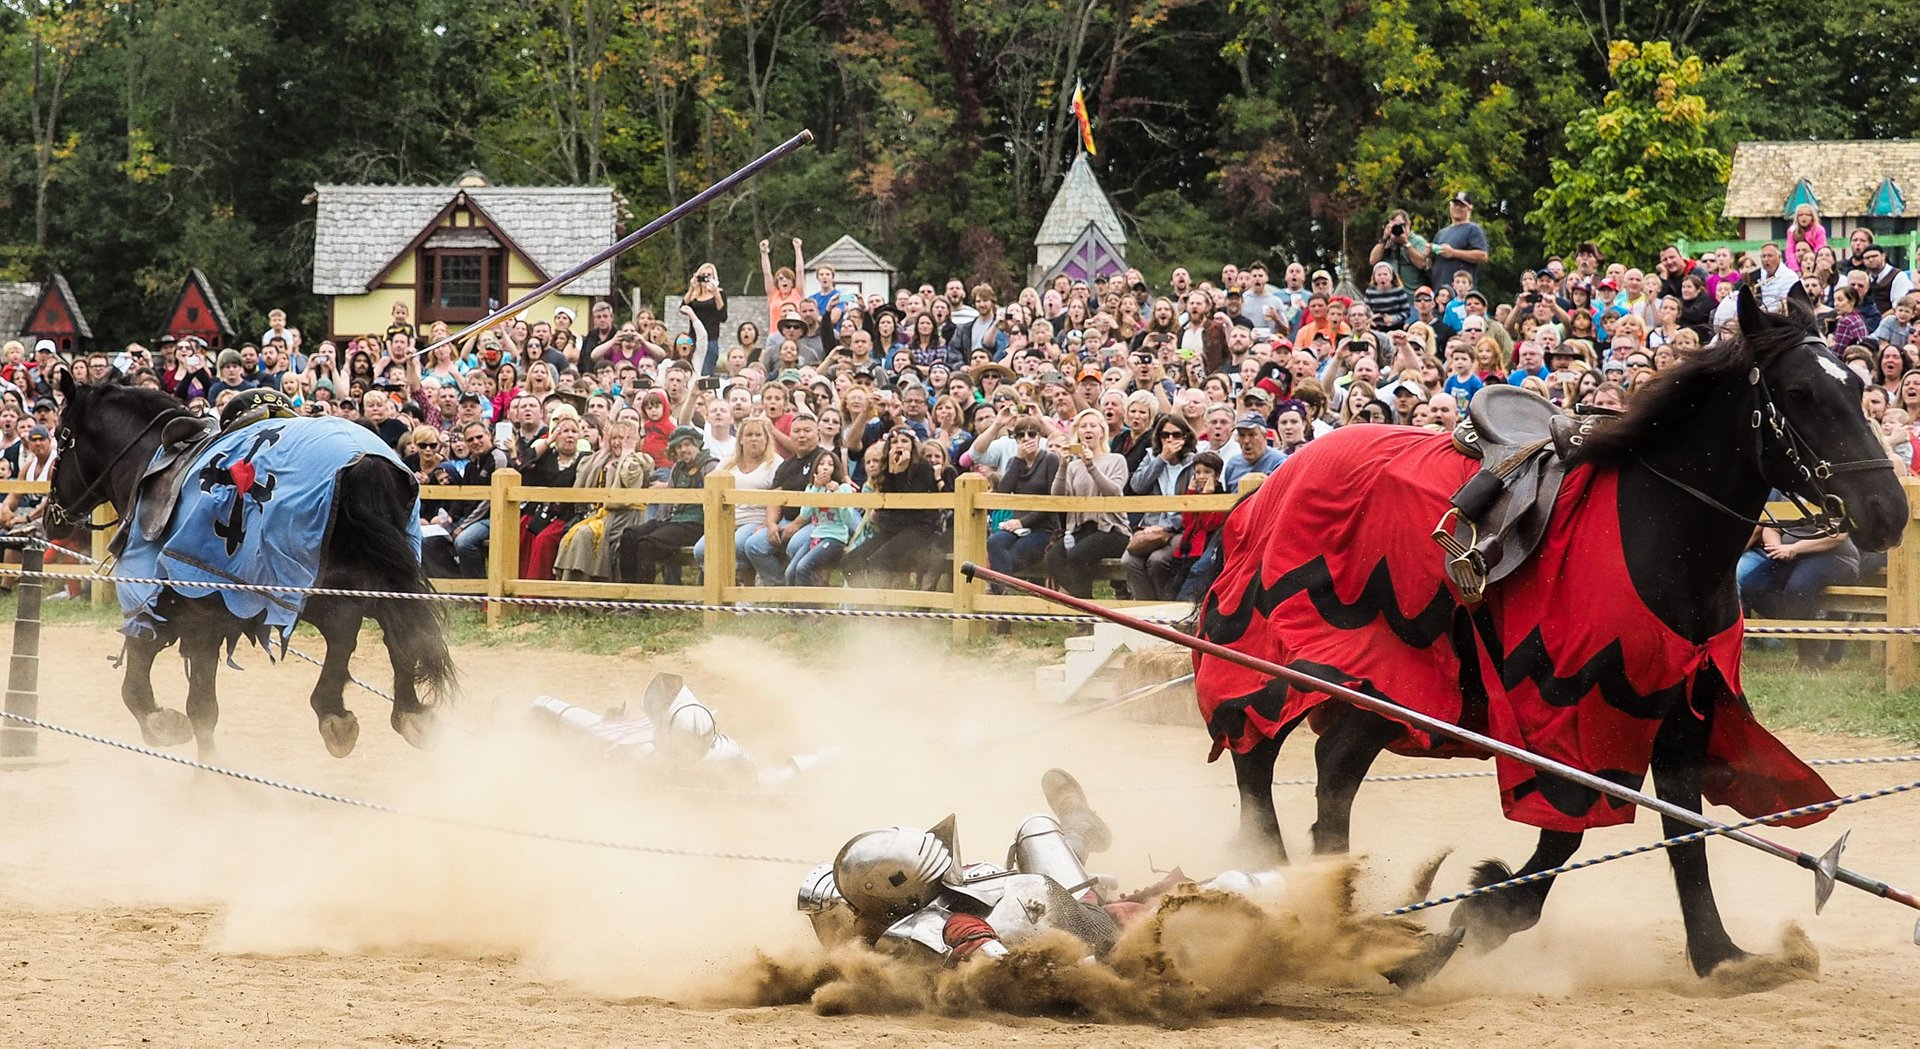 Best time to see Ohio Renaissance Festival in Ohio 2020